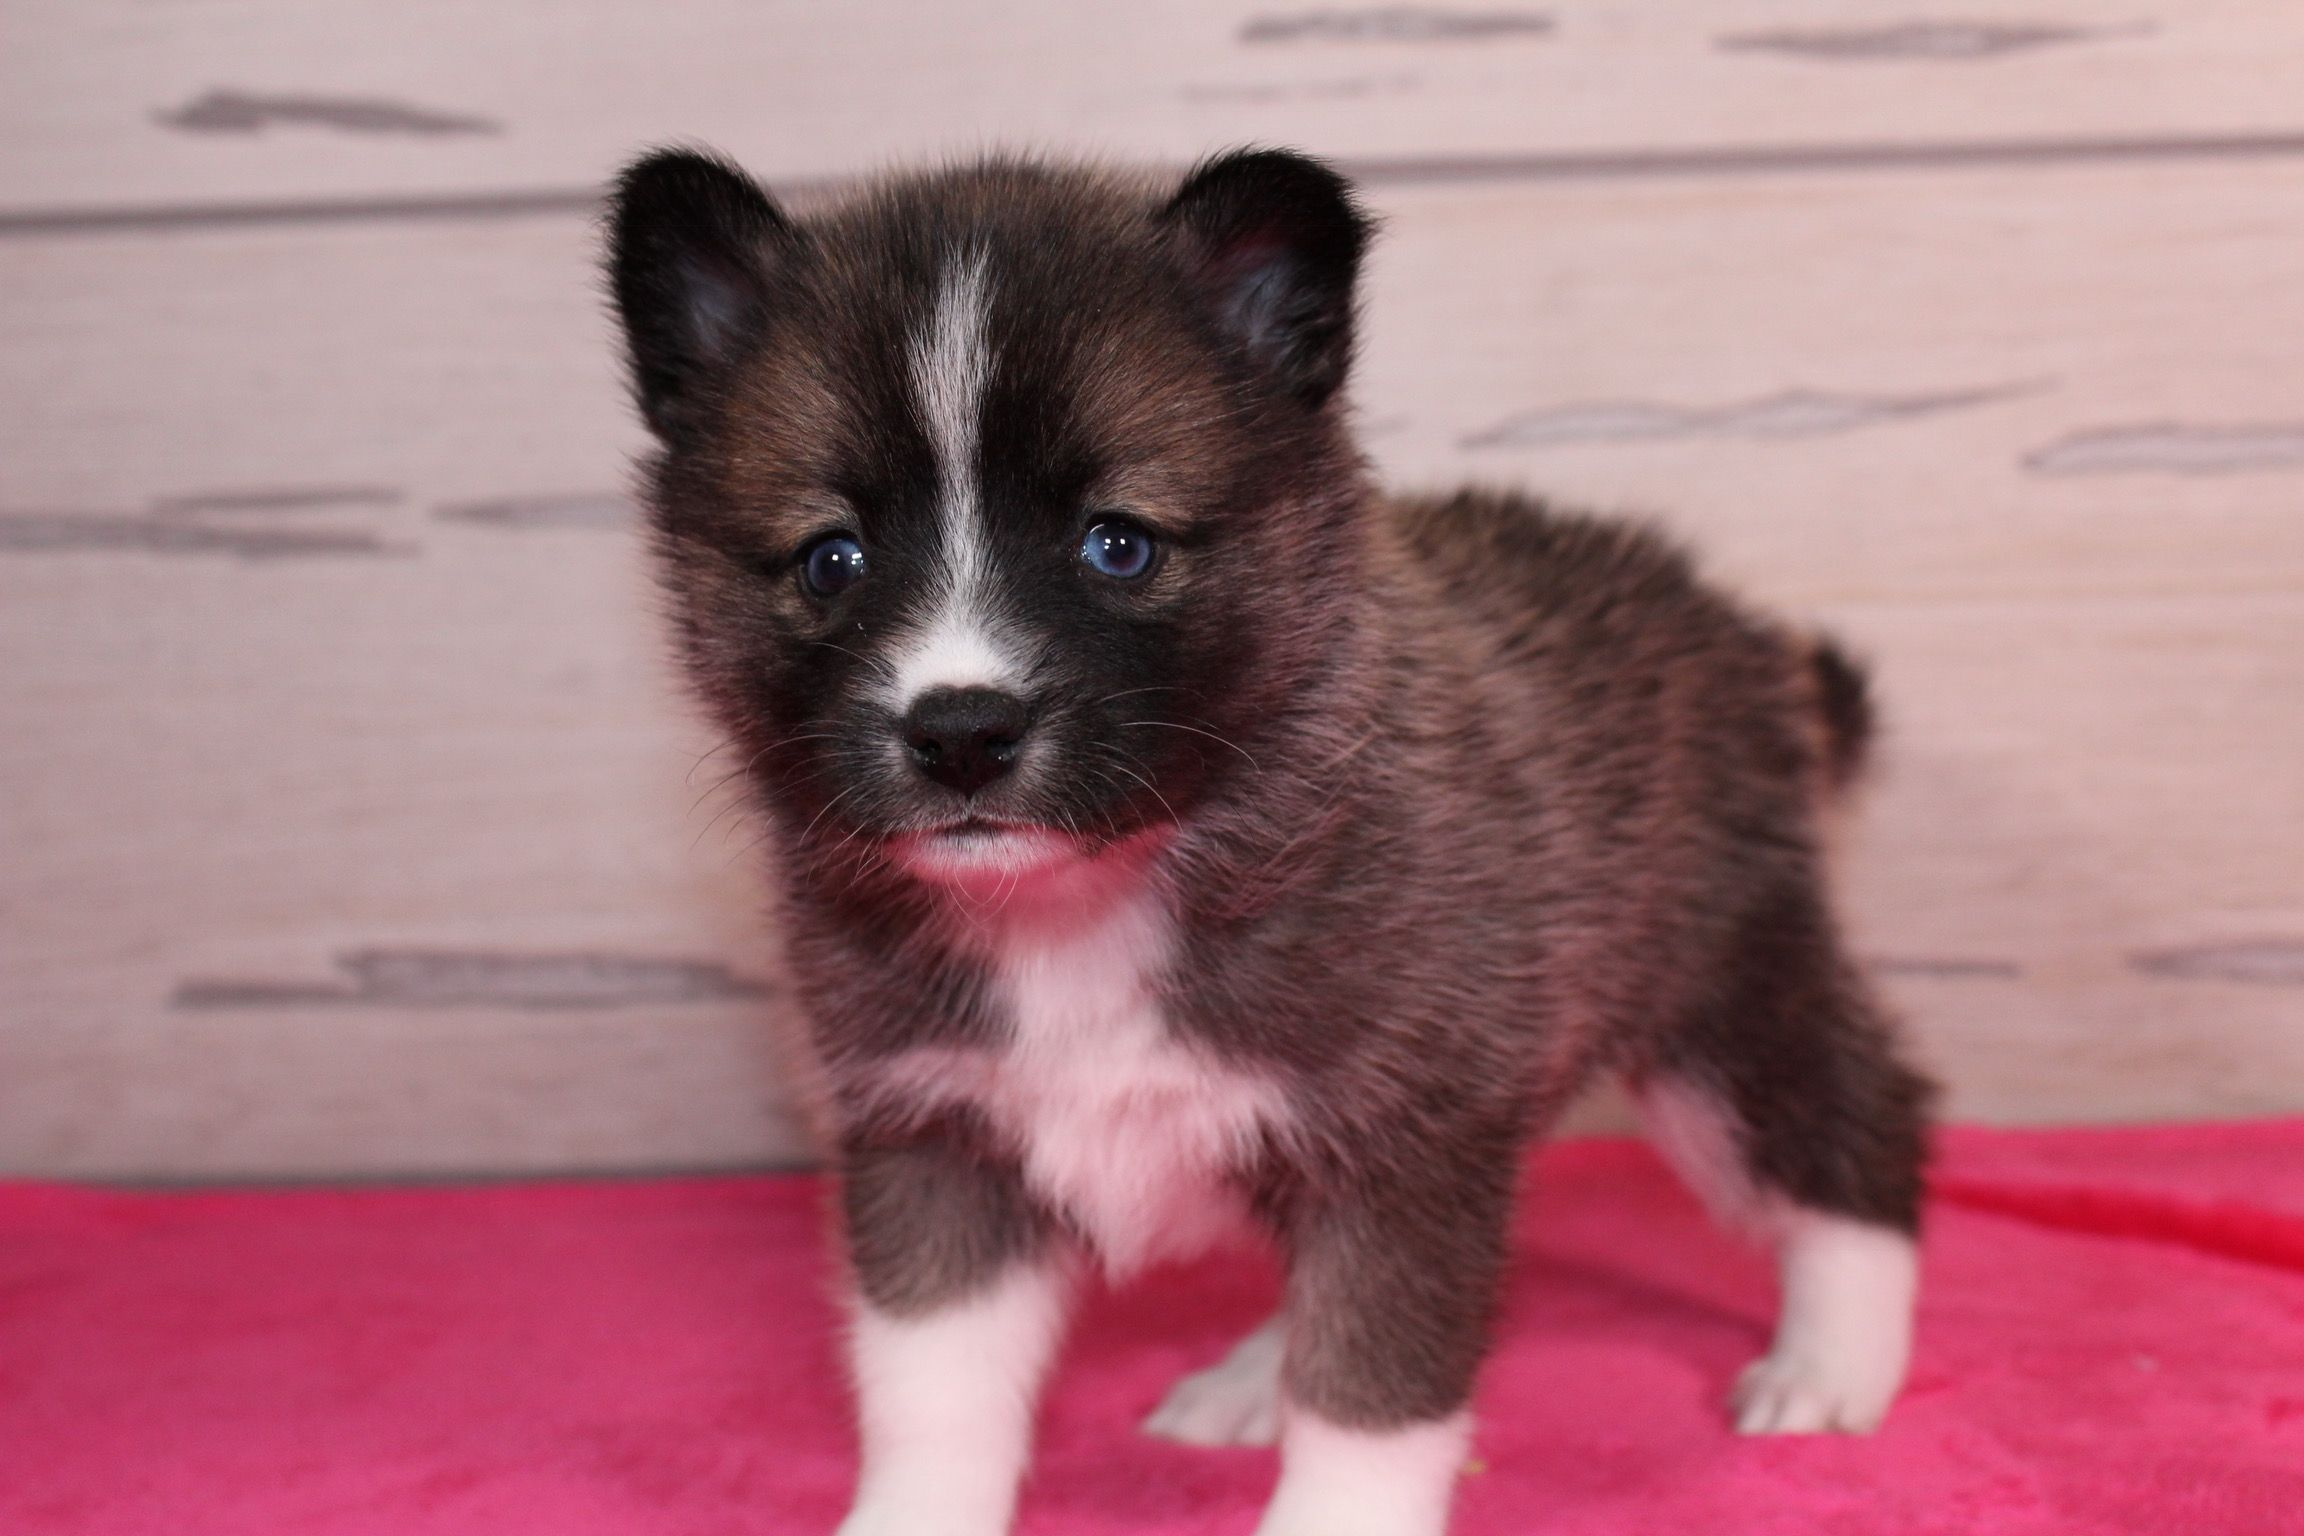 Lindsey A Female Pomsky Puppy In Nappanee Indiana For Sale Find Cute Pomsky Puppies And Responsible Pomsky Breeders At V Puppies Puppies Near Me Puppy Care